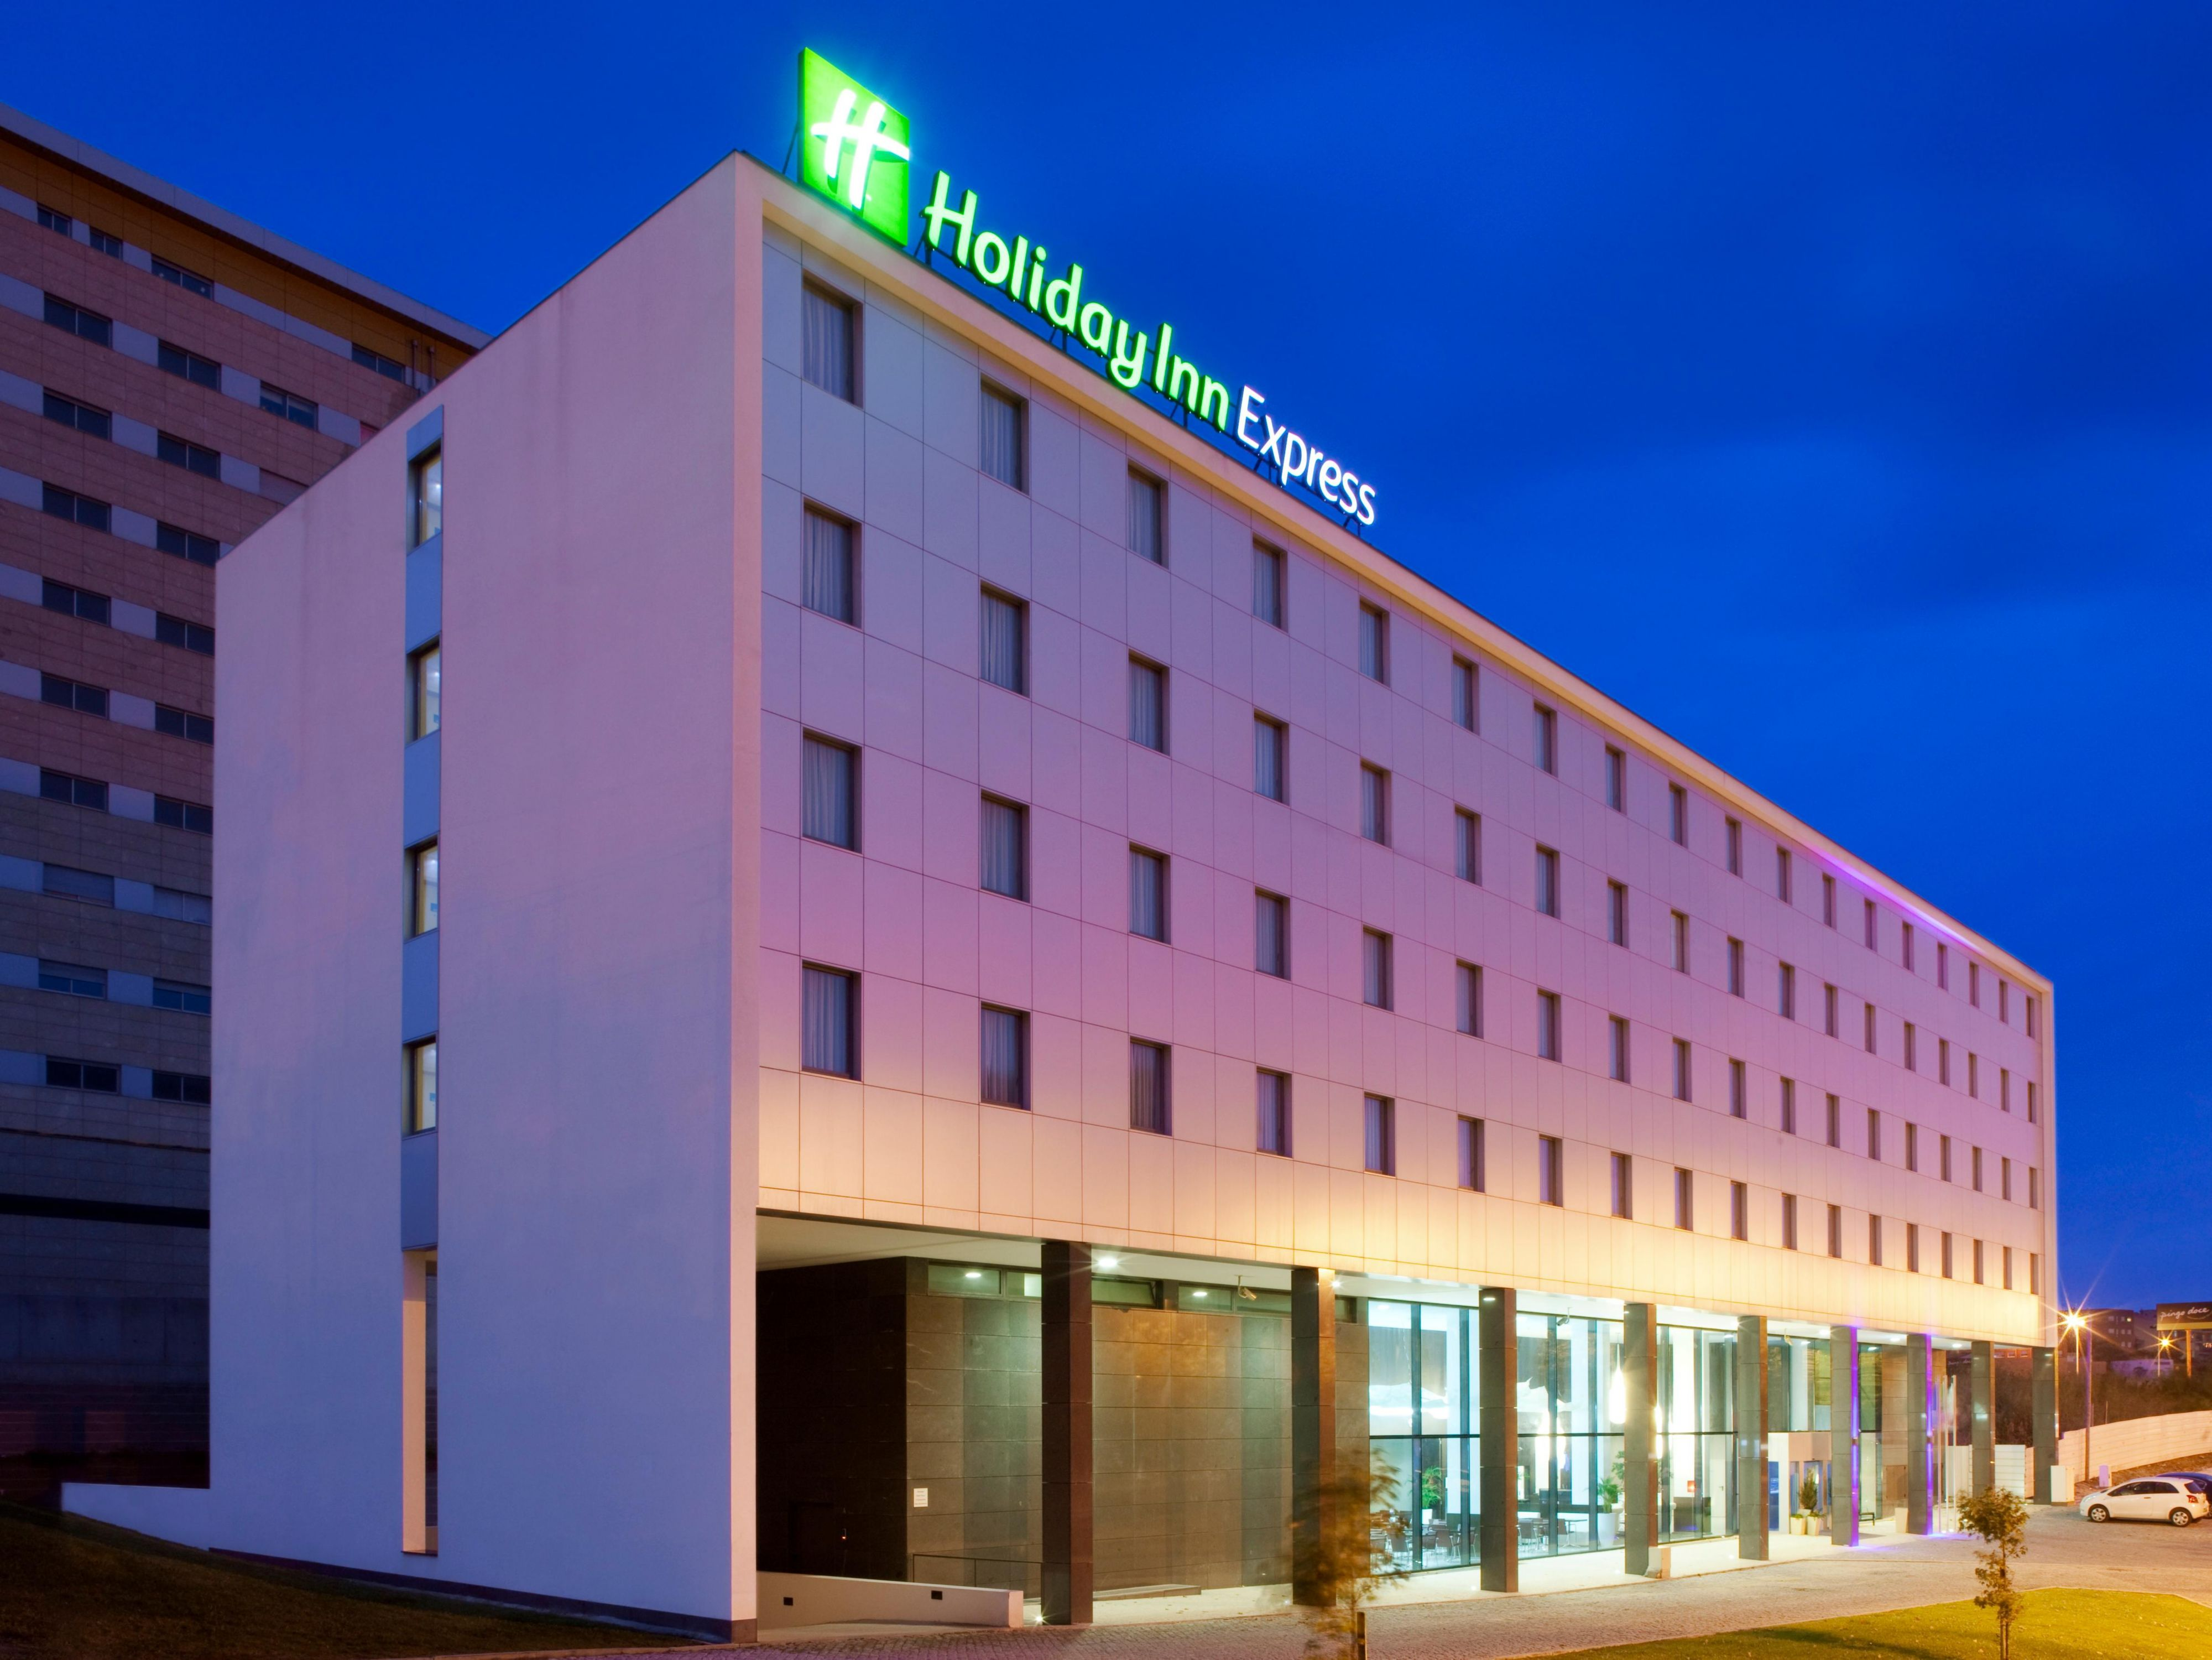 Holiday Inn Express Porto Exponor  a step away from your business